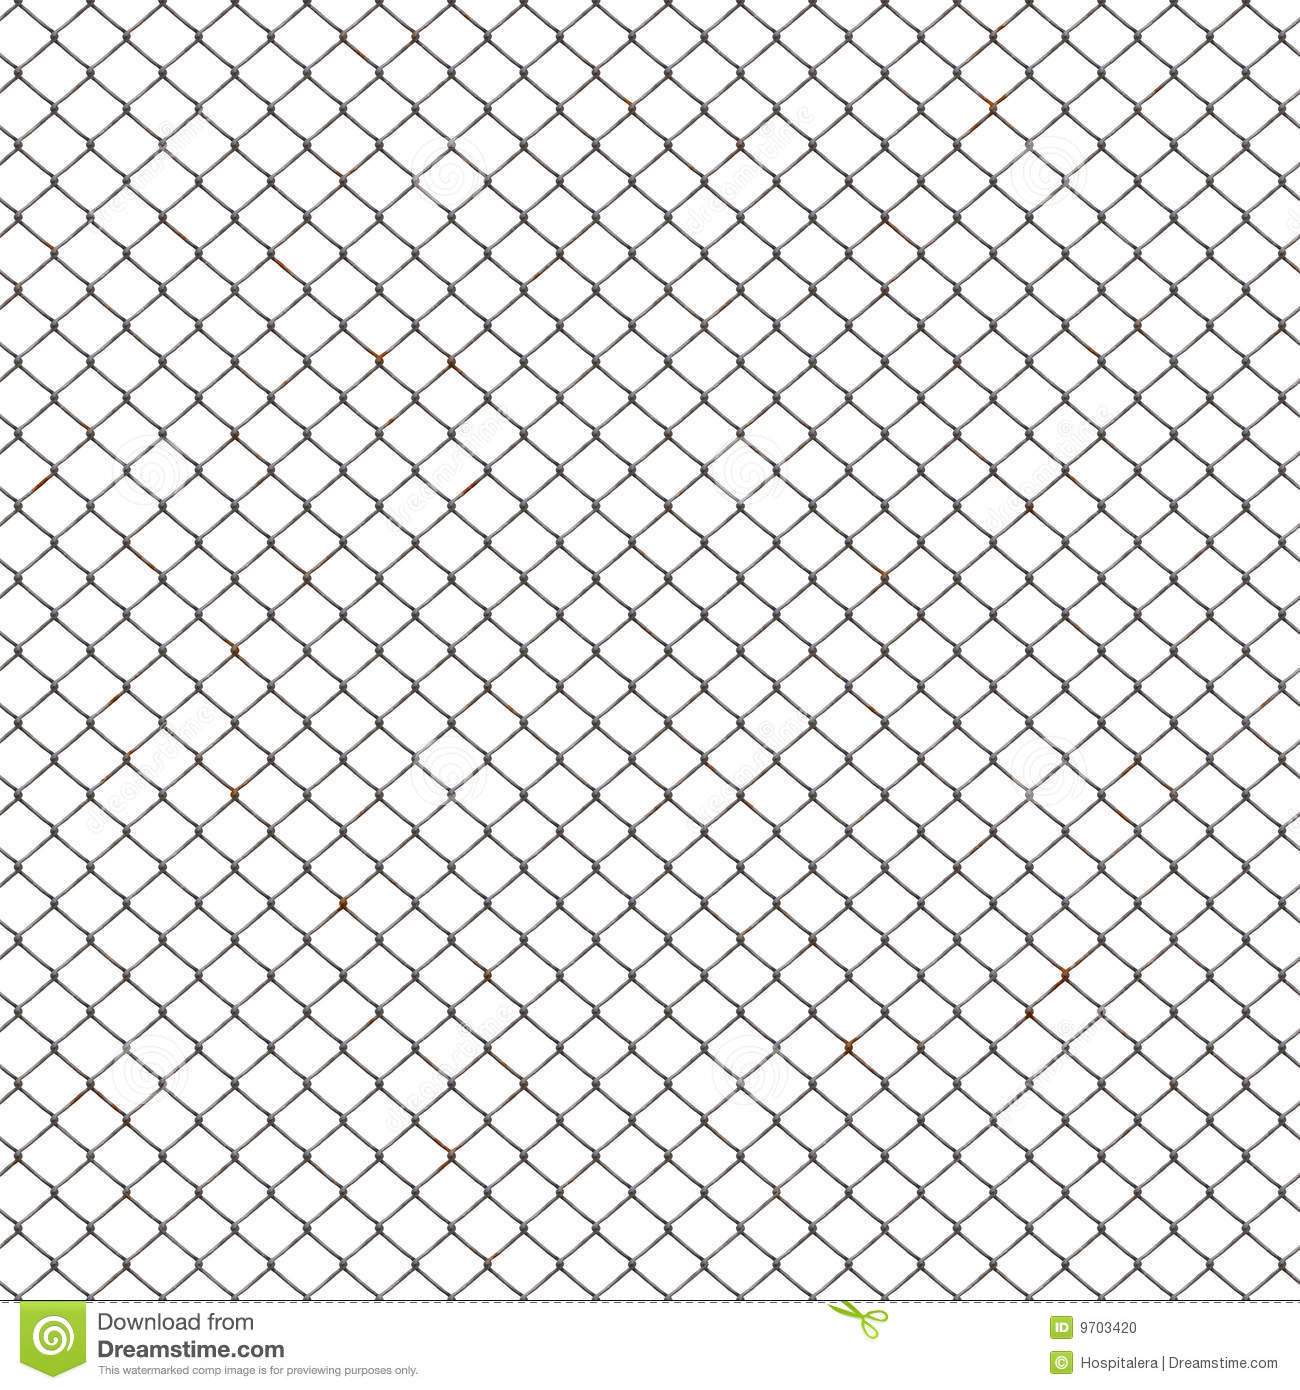 Chicken wire clipart.